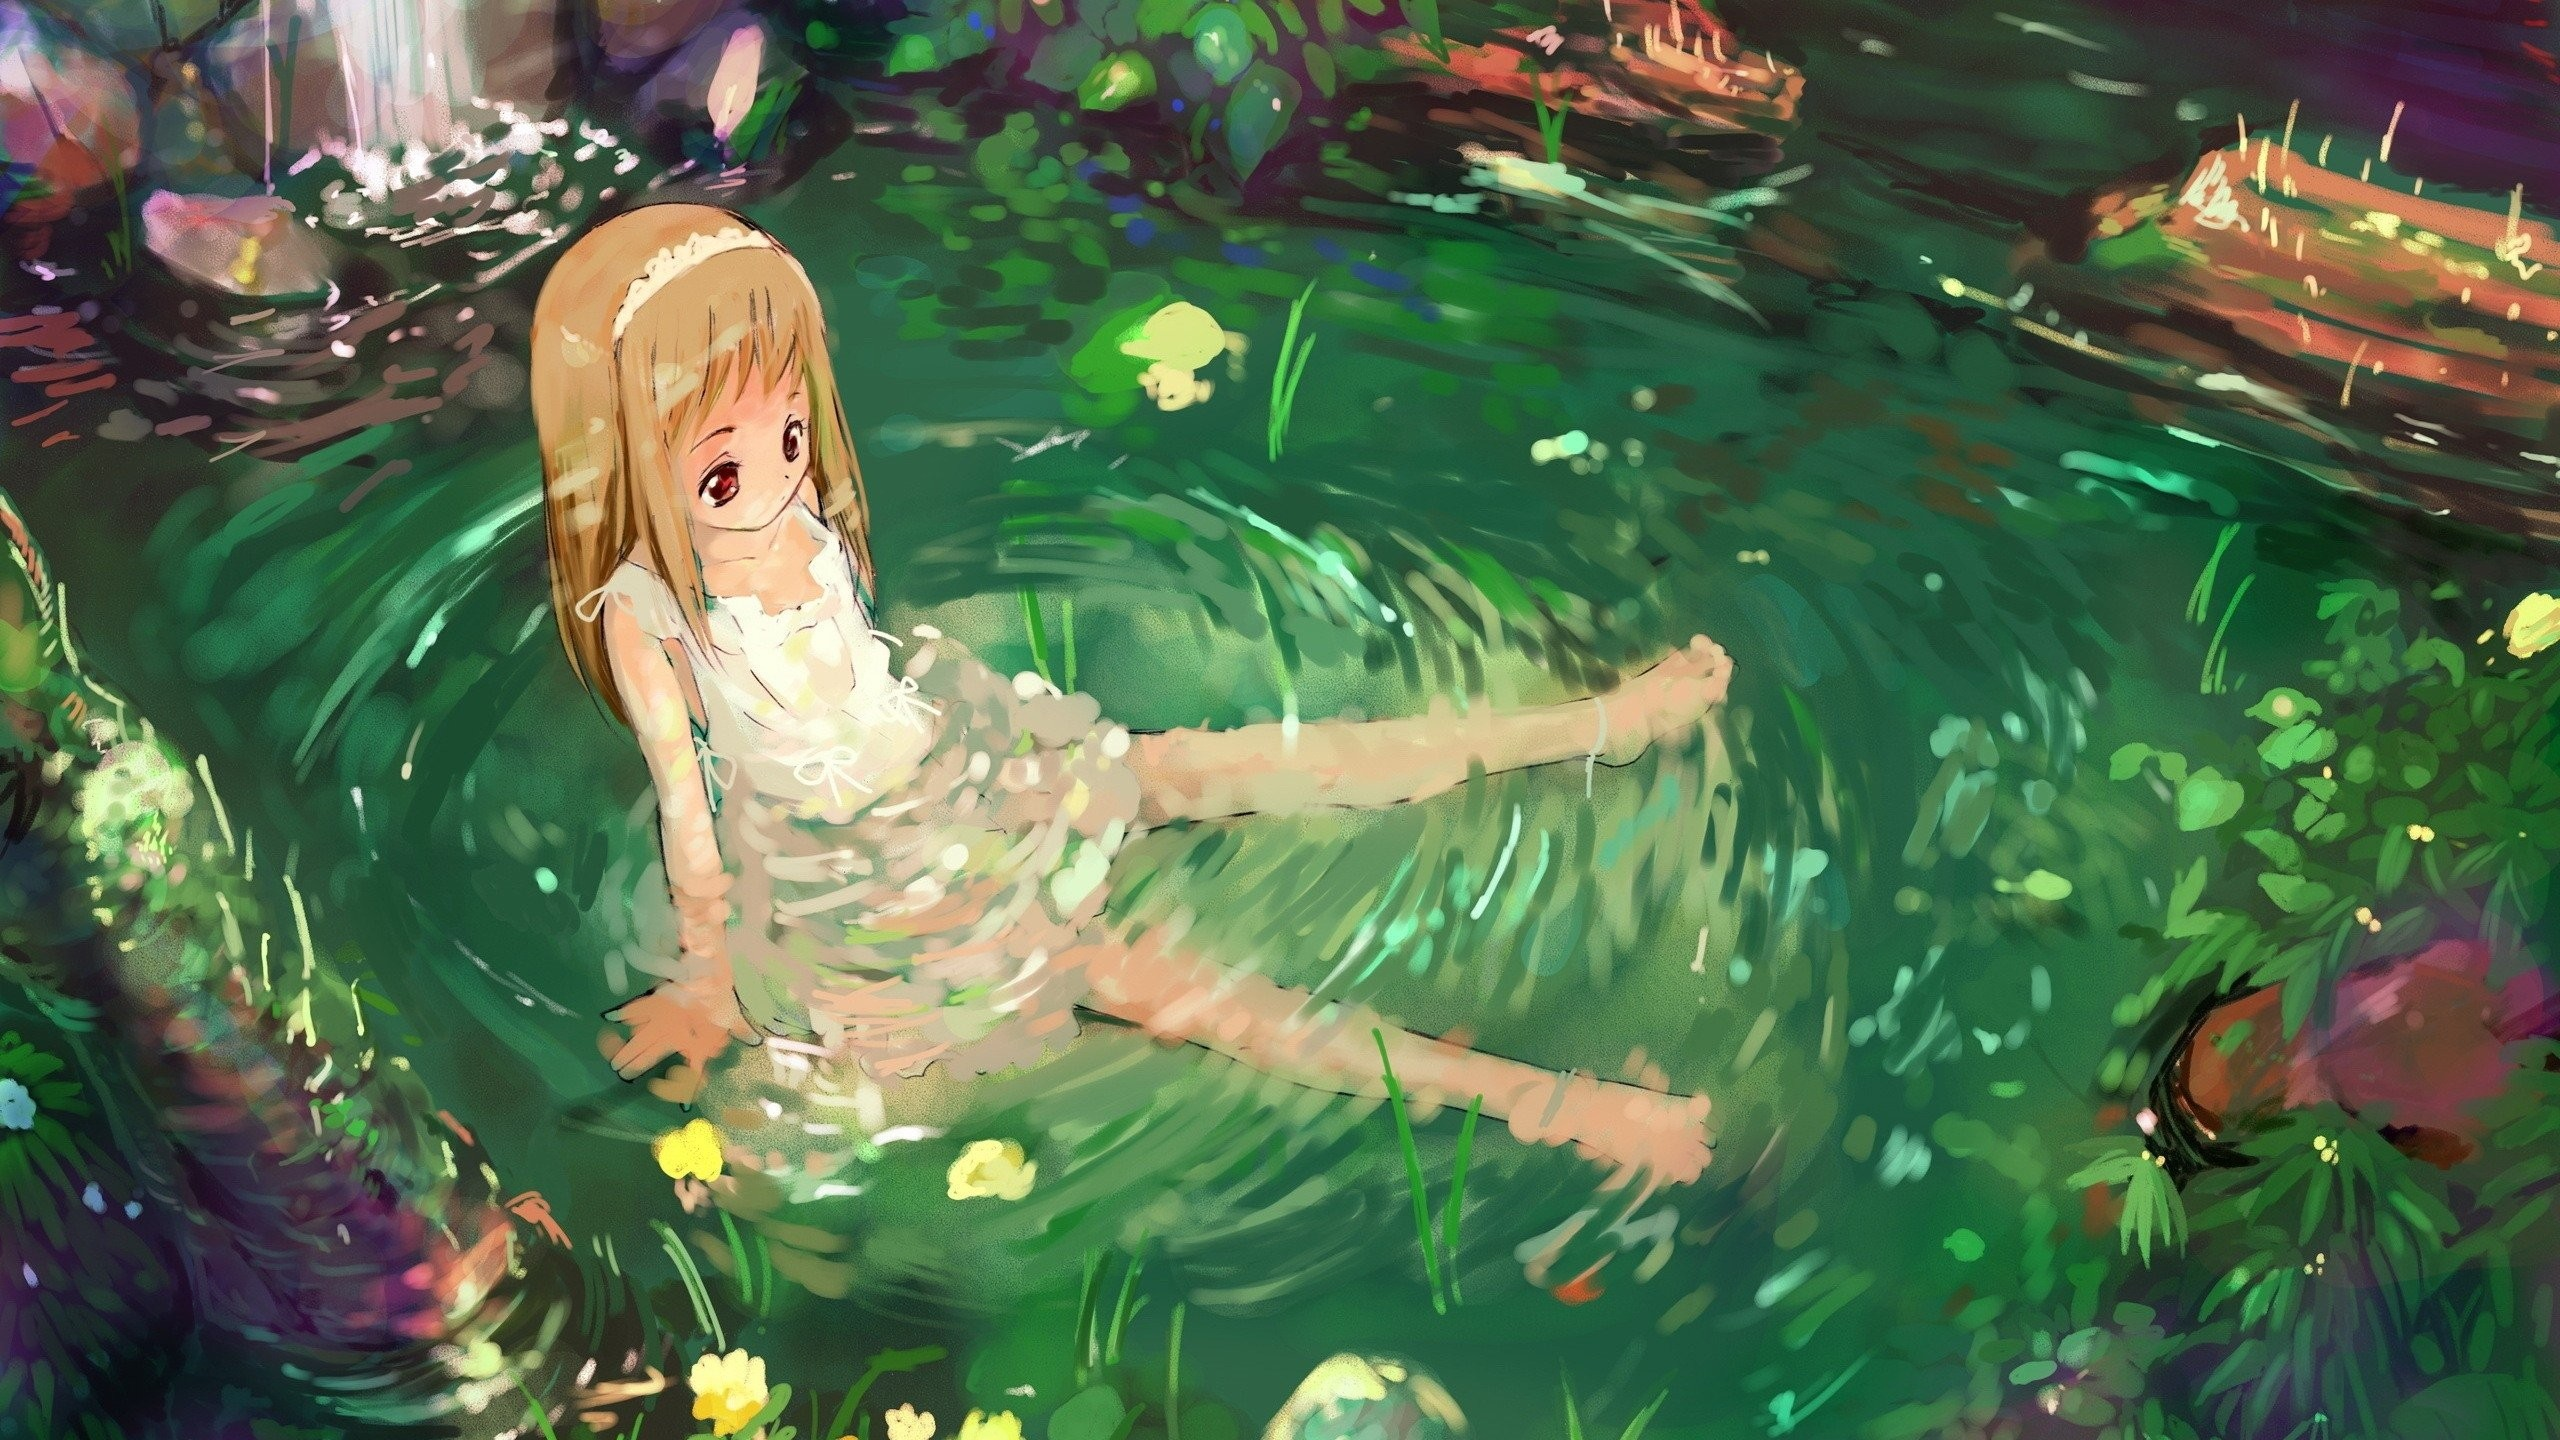 Res: 2560x1440, anime girl nature